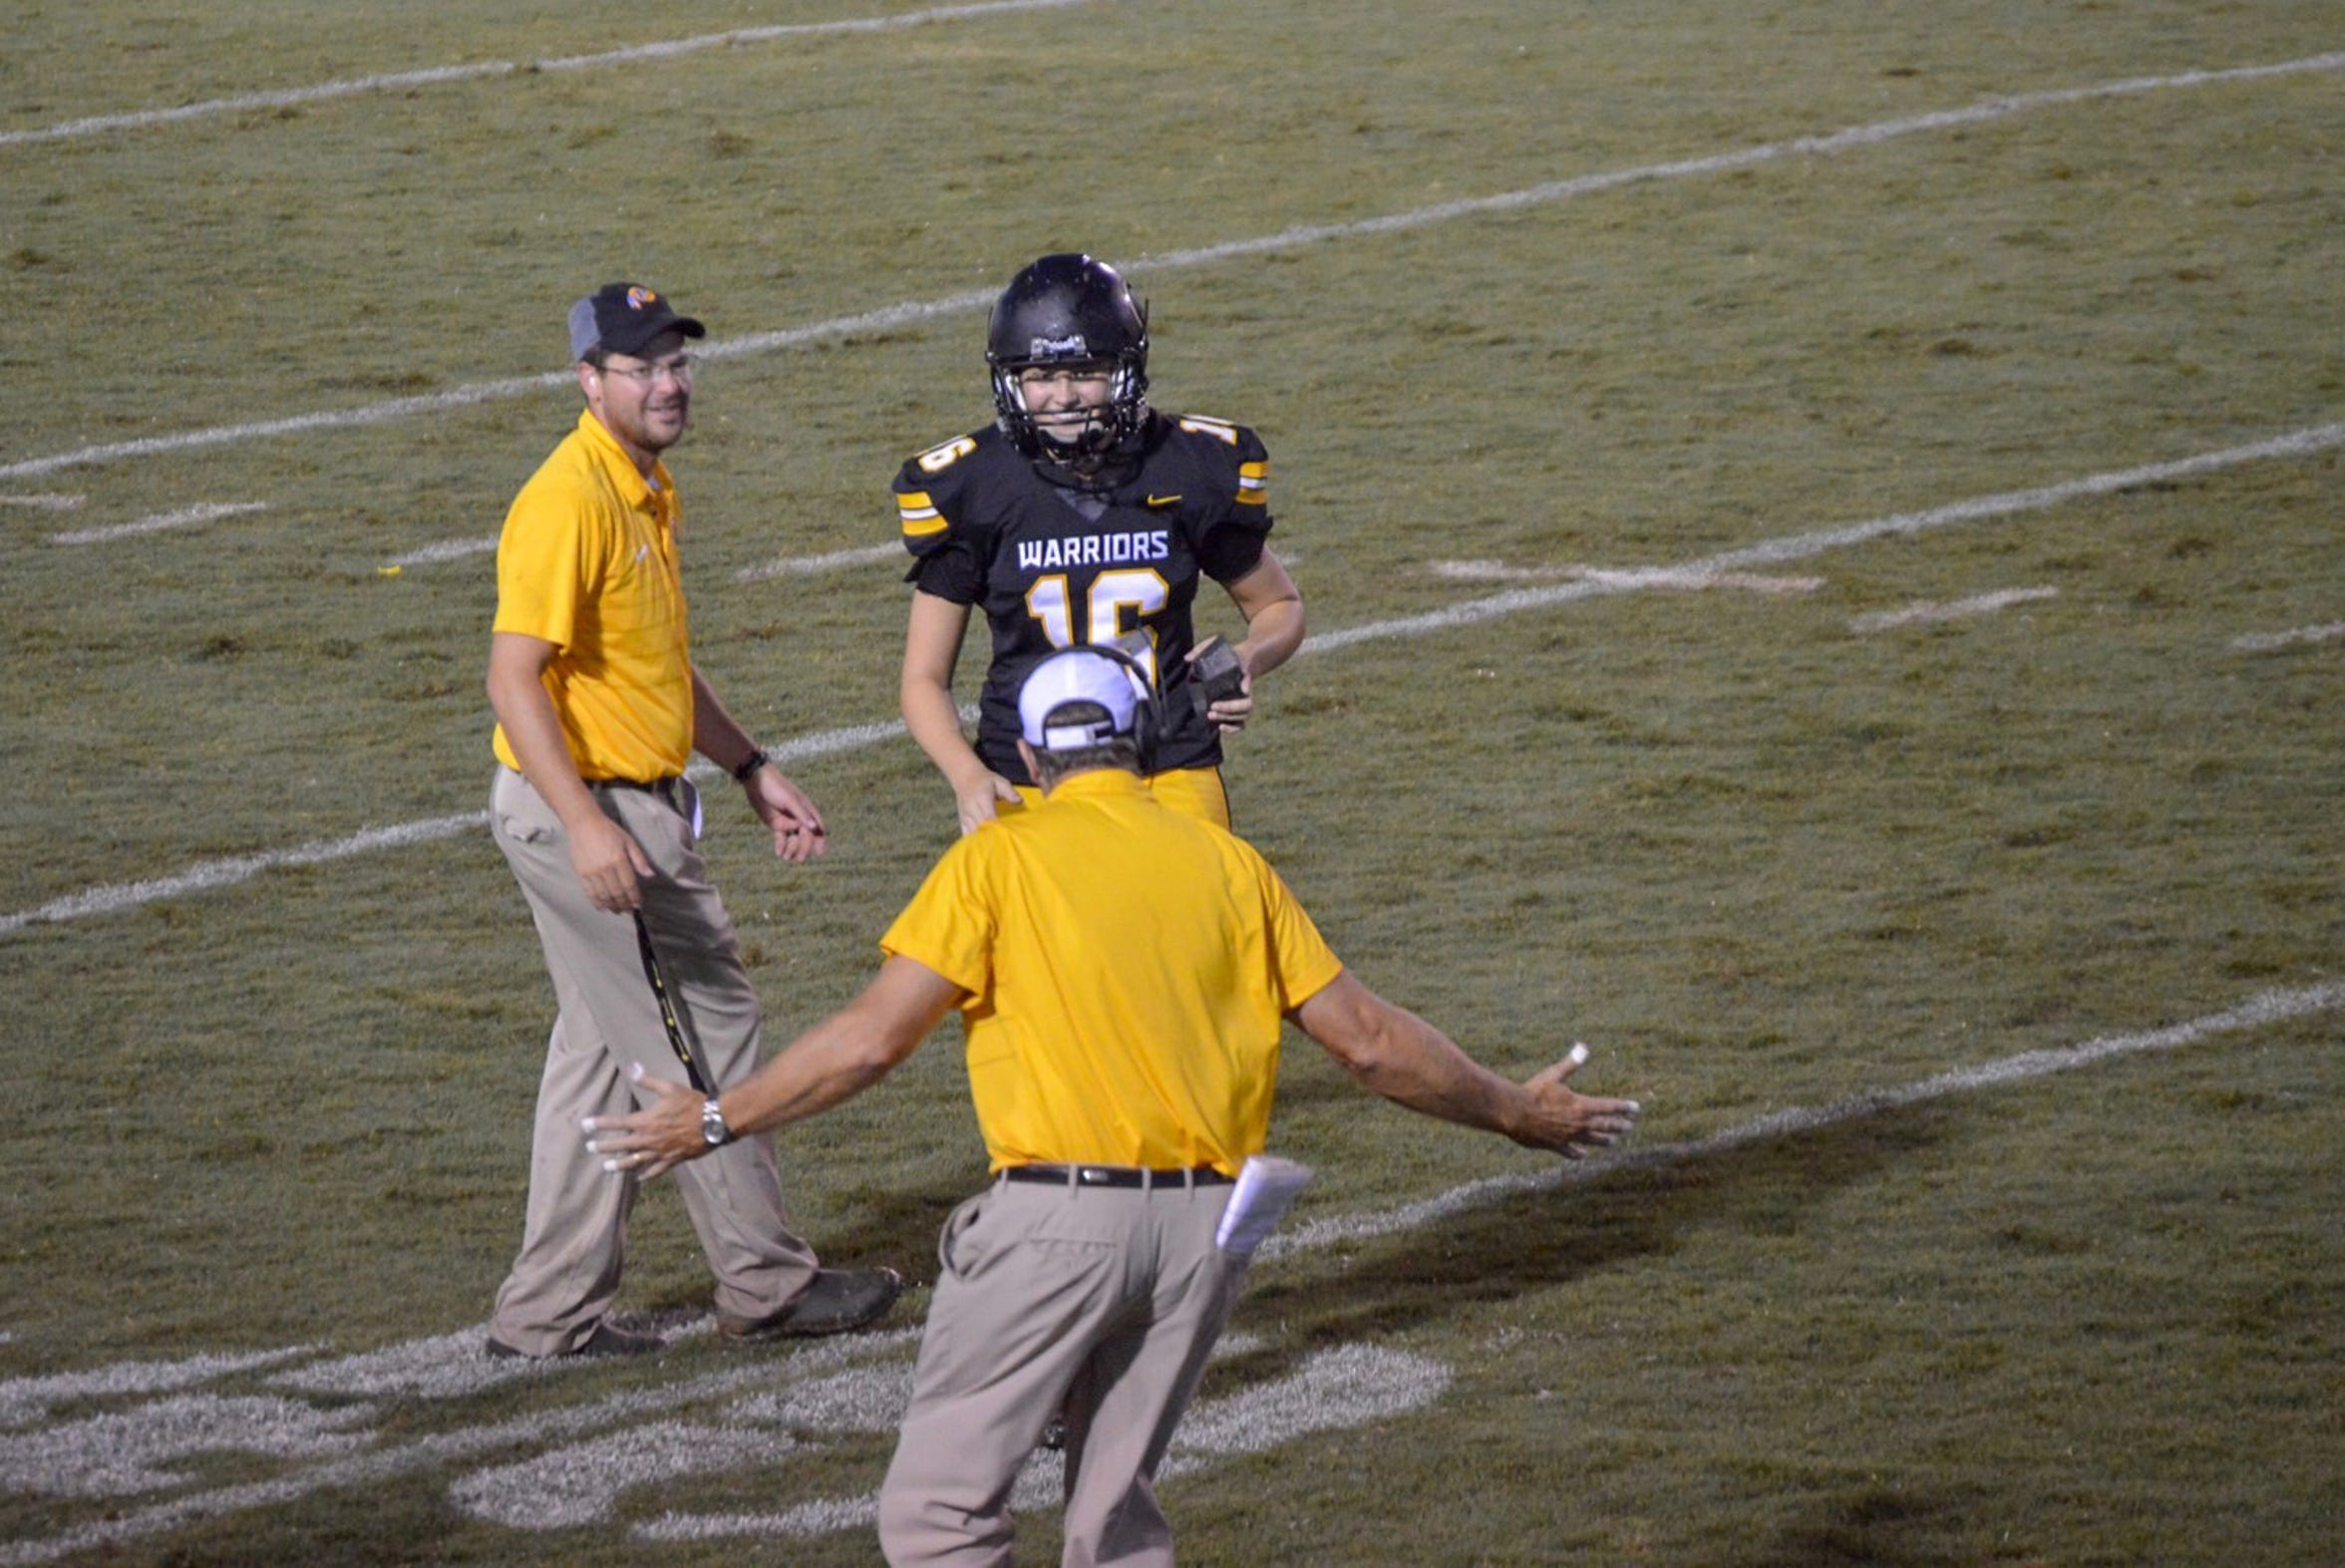 Pontotoc head coach Jeff Carter congratulates Taylor Hughes after she kicked a touchback in her final high school football game on Aug. 31, 2018.